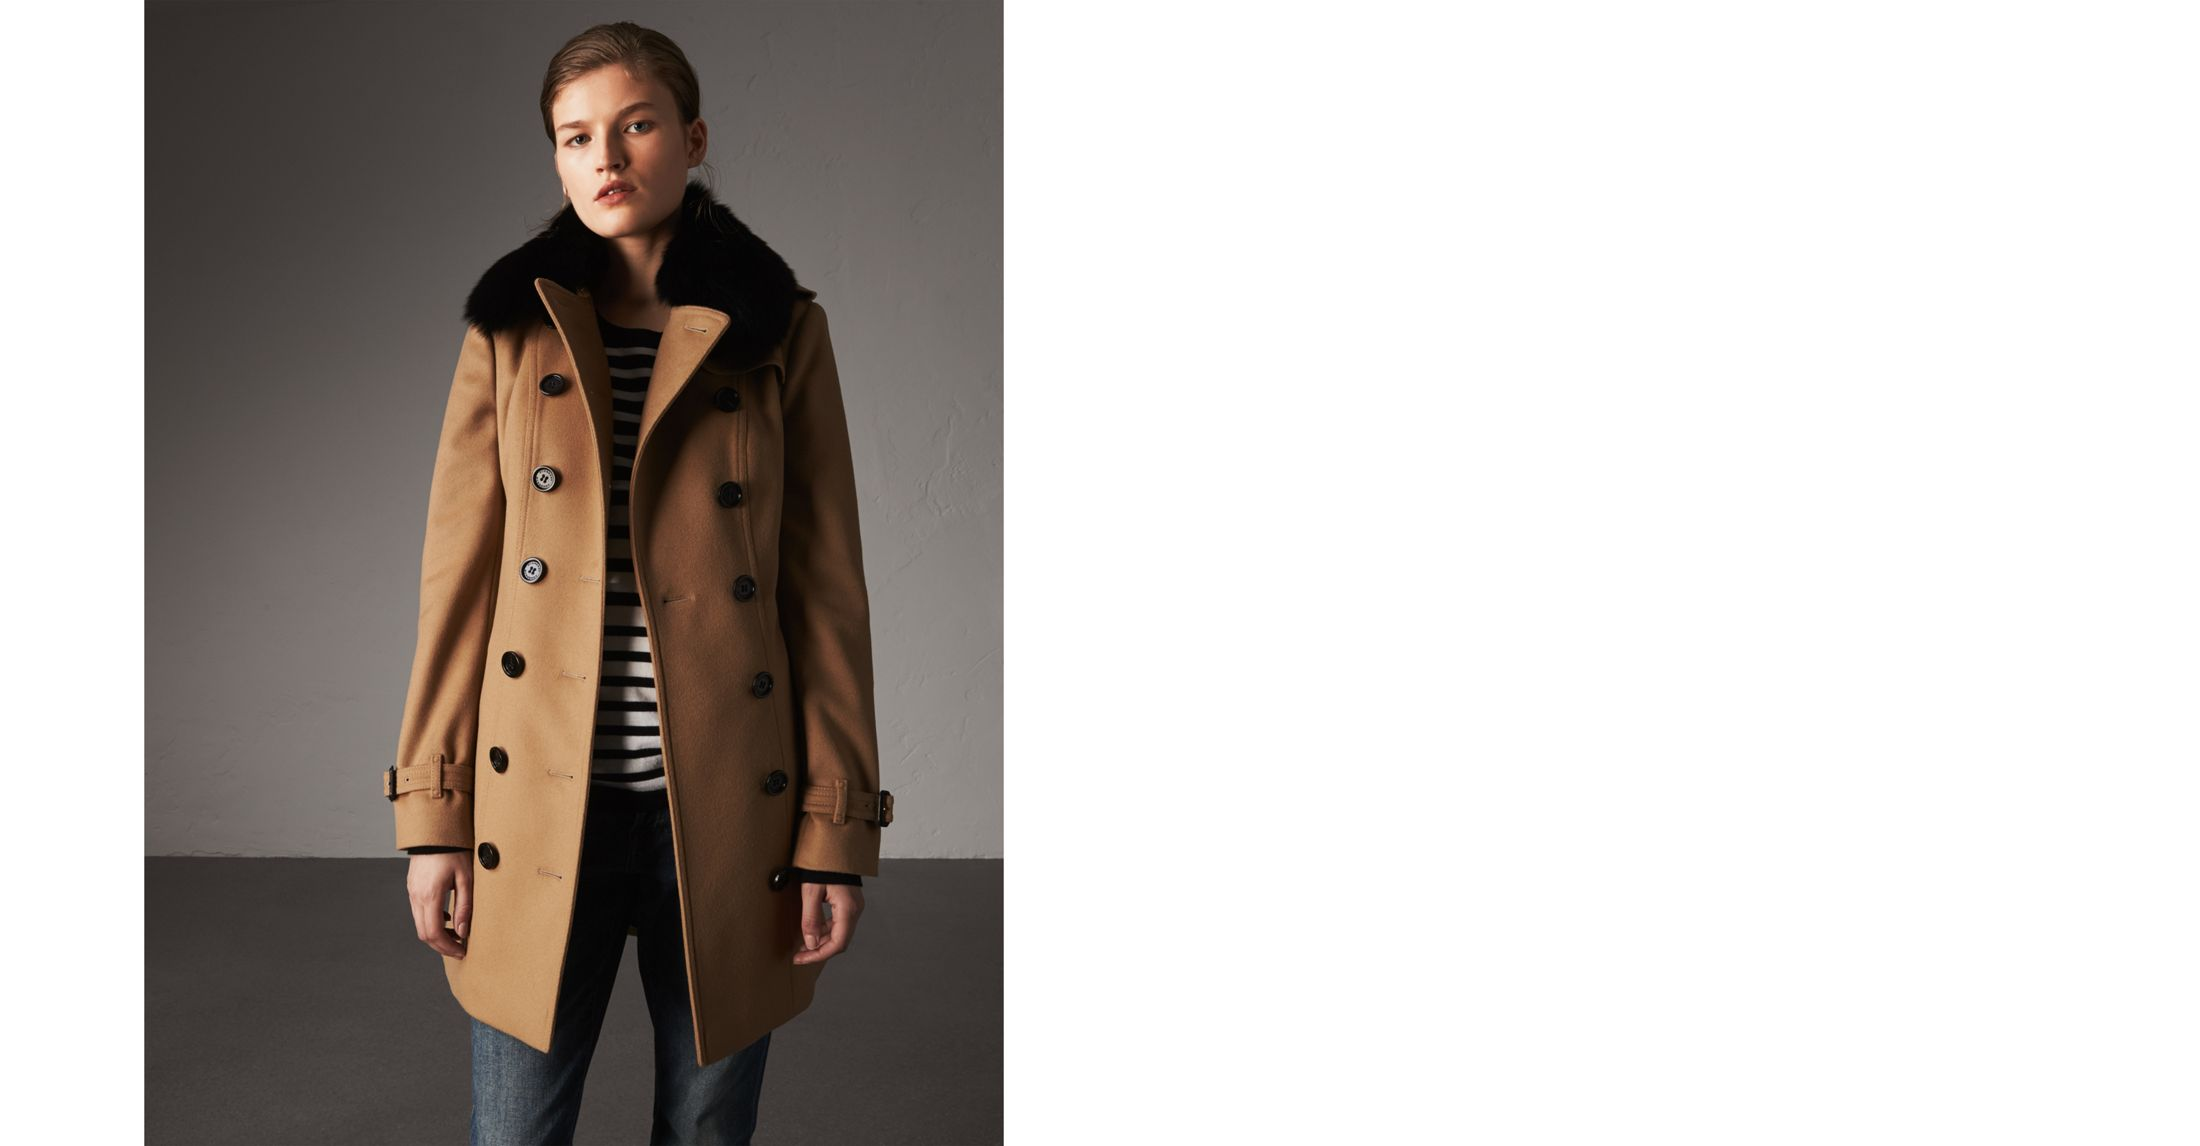 cb49707e37c477 Shoptagr | Wool Cashmere Trench Coat With Fur Collar by Burberry